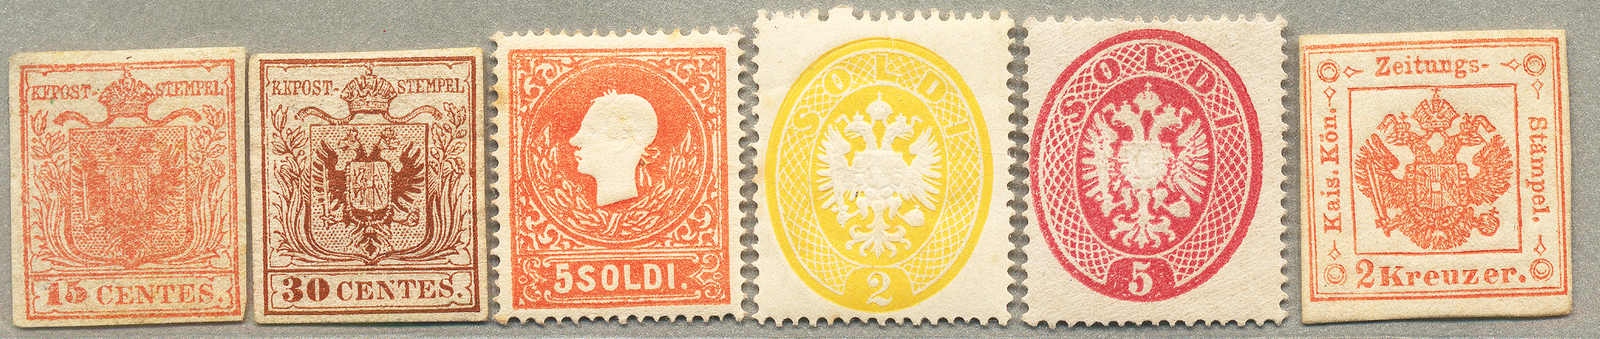 Lot 40319 - europa österreich lombardei venetien -  classicphil GmbH 6'th classicphil Auction - Day 3